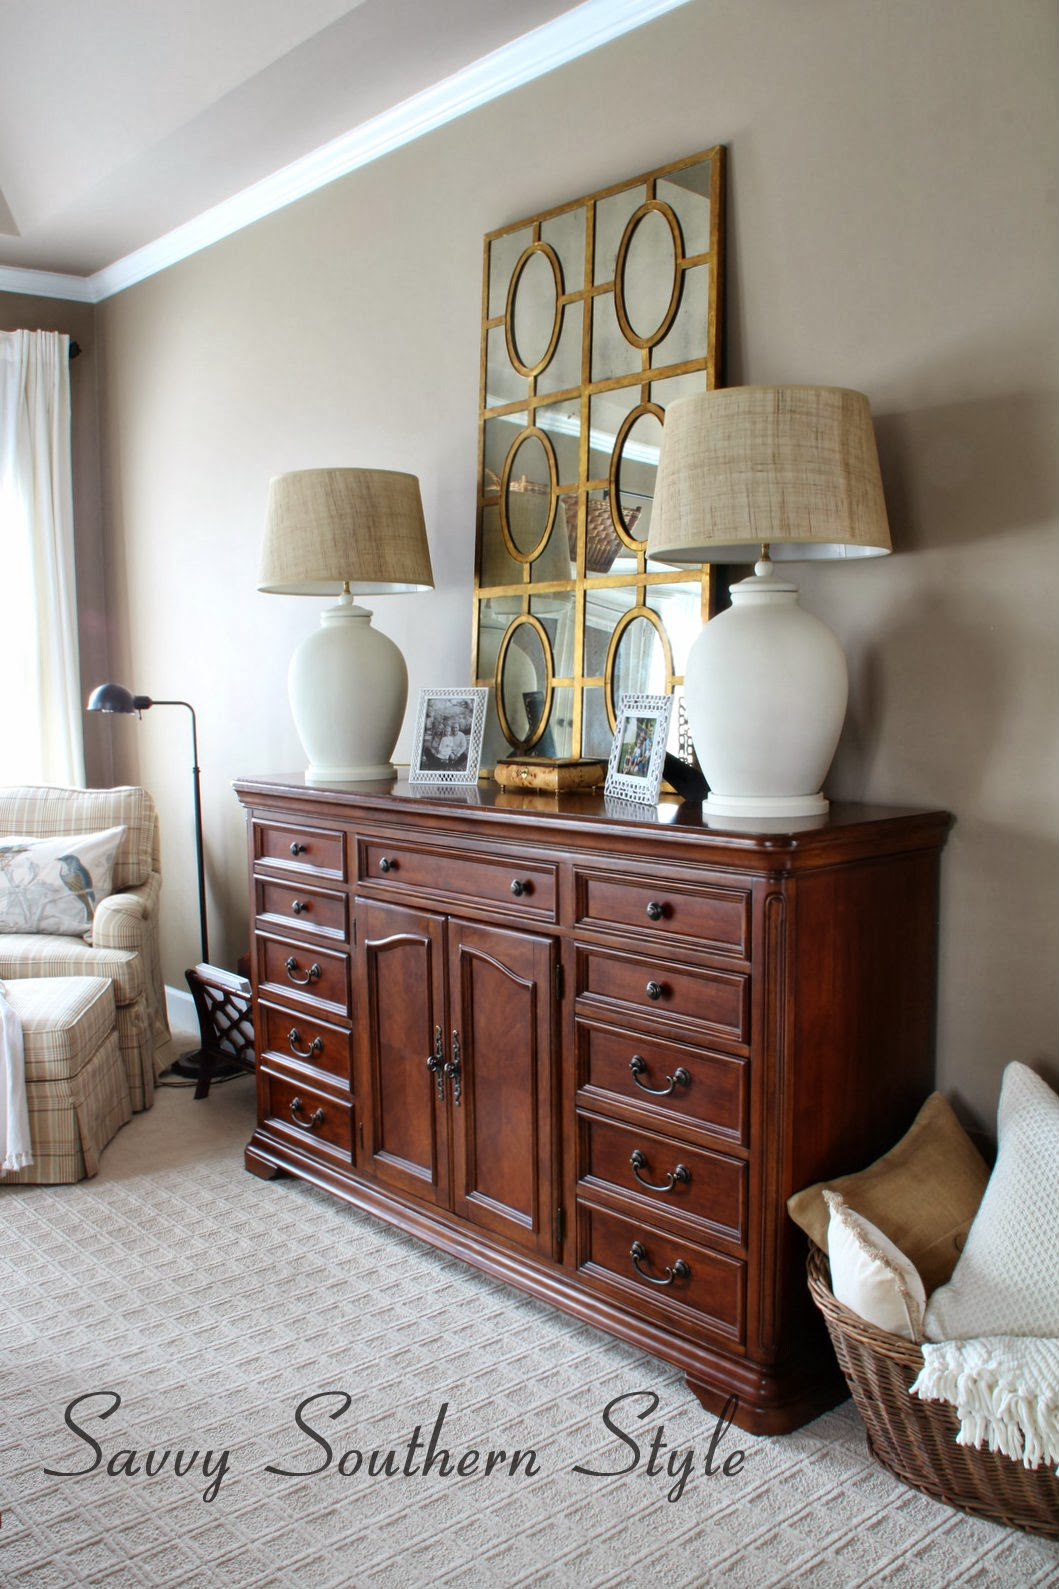 Southern Bedroom Savvy Southern Style Master Bedroom Evolution